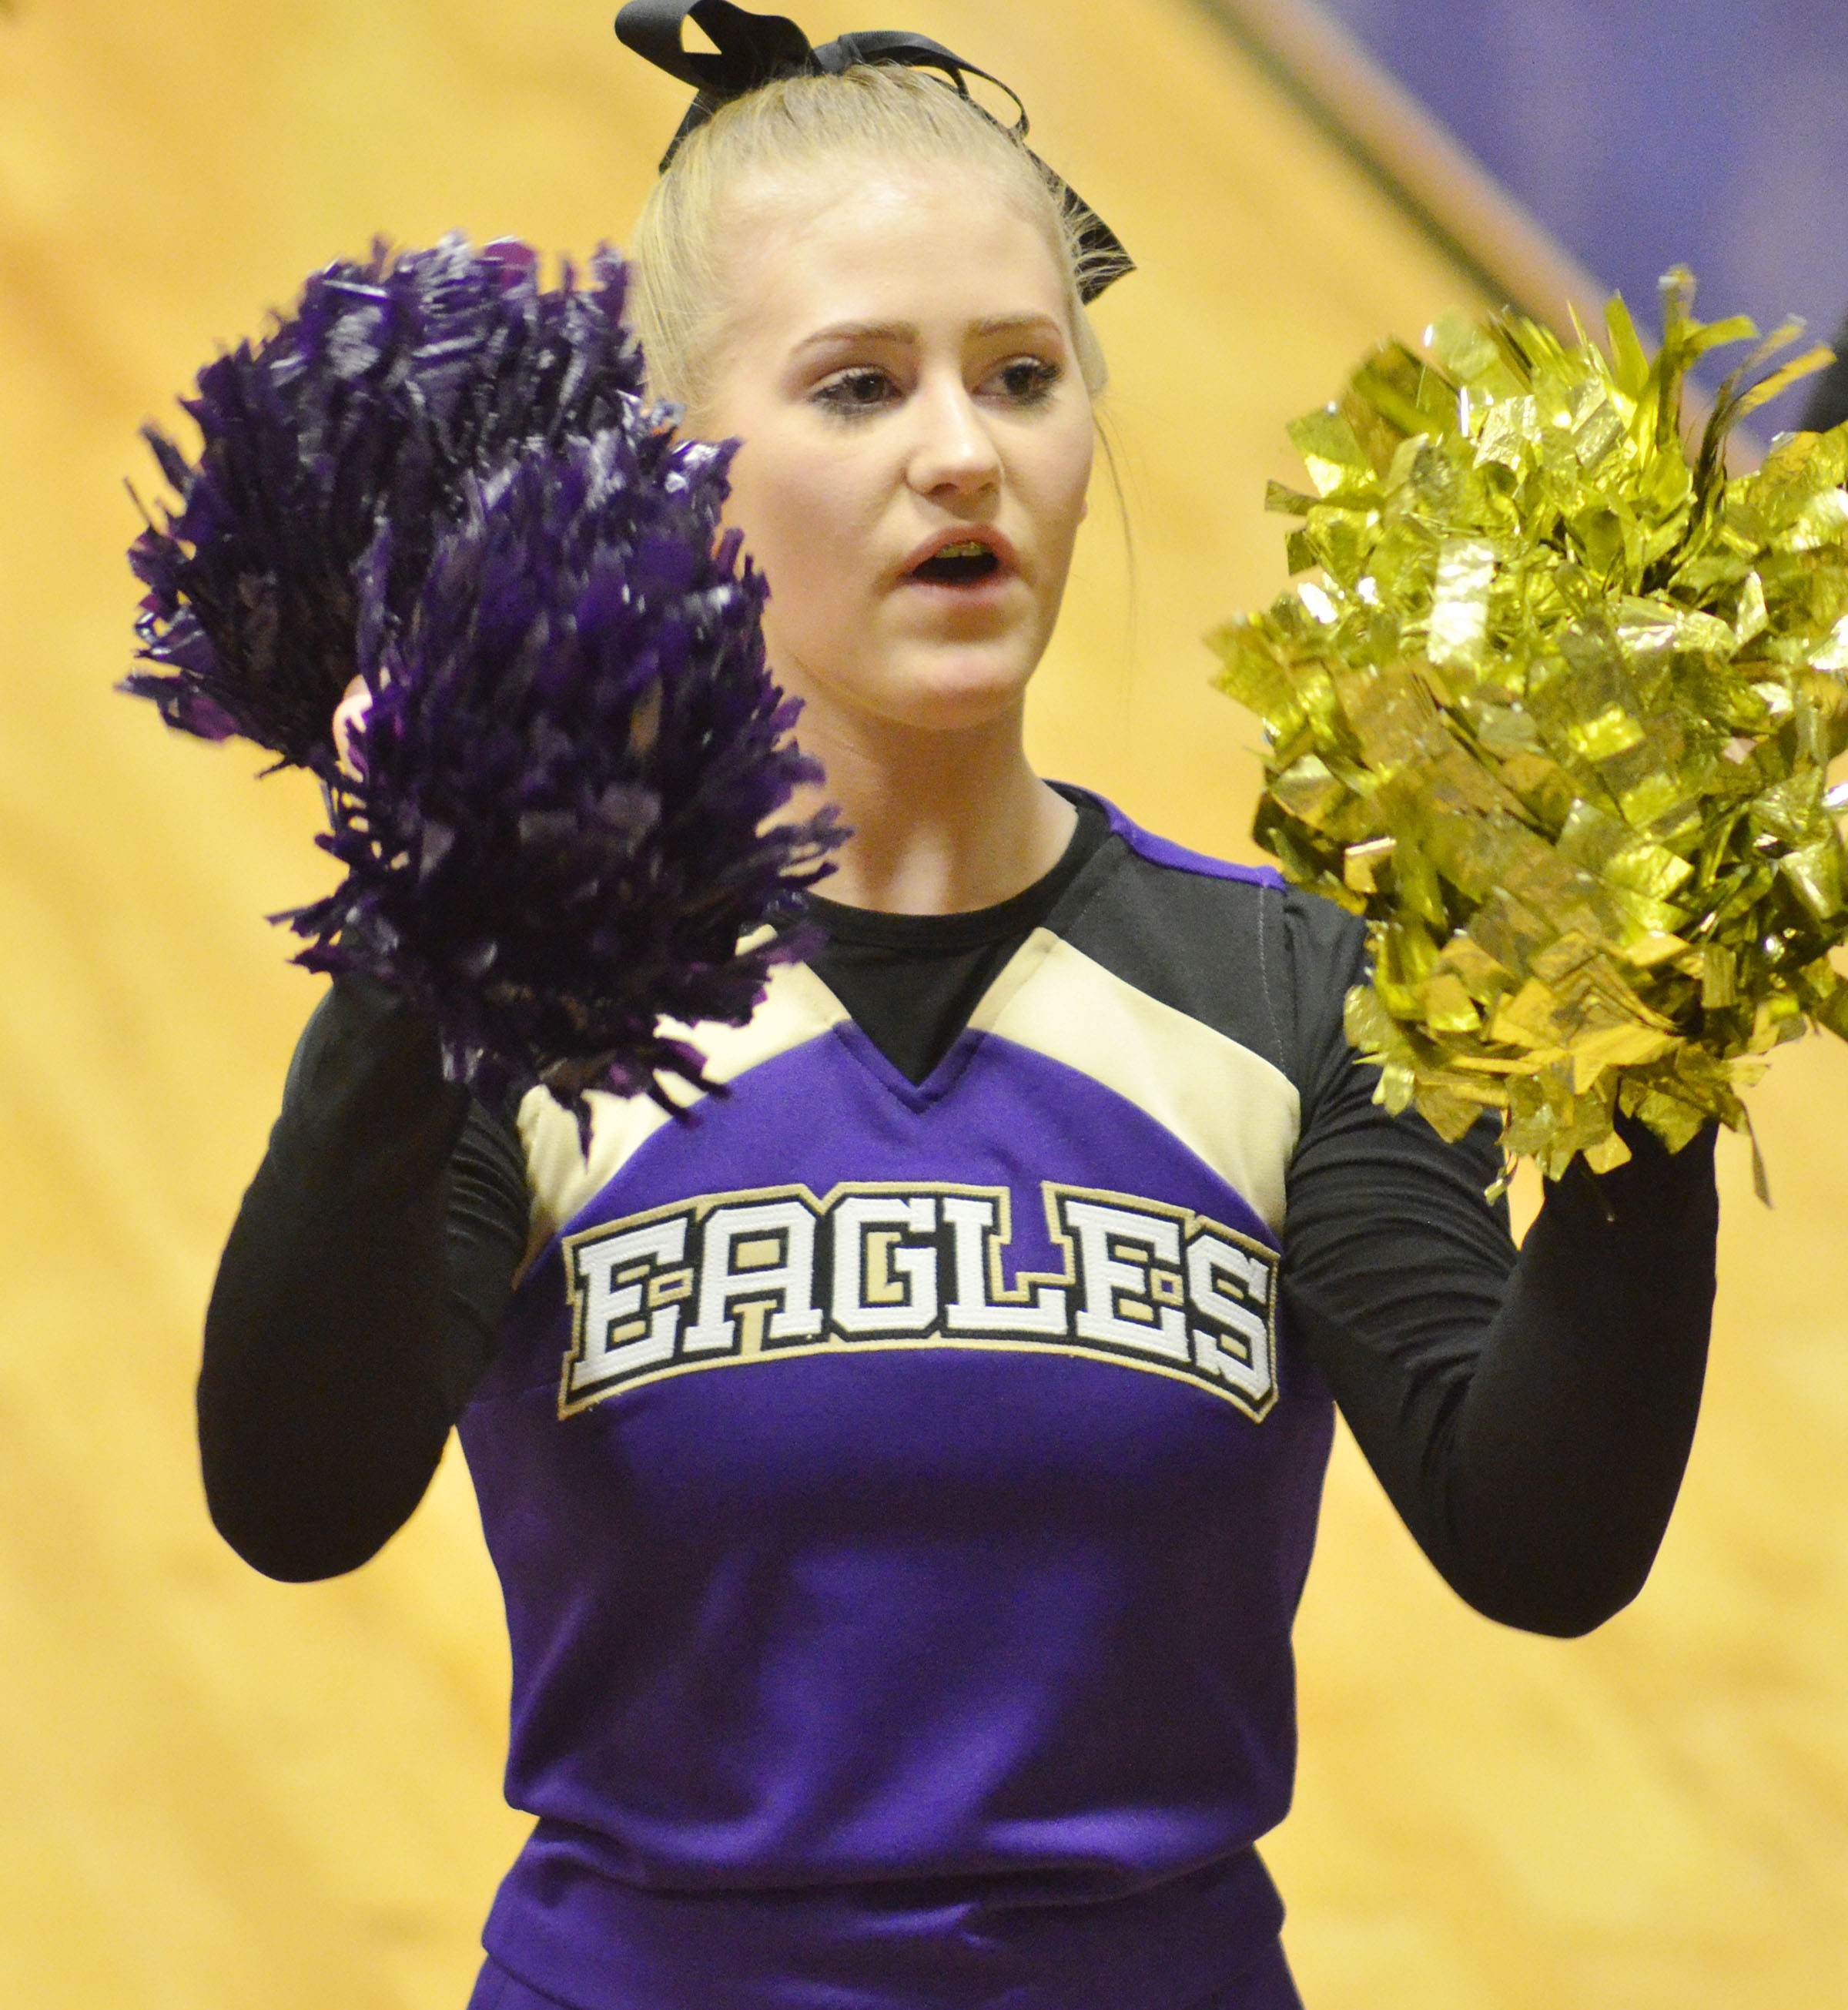 CHS freshman Isabella Osborne cheers for the Eagles.